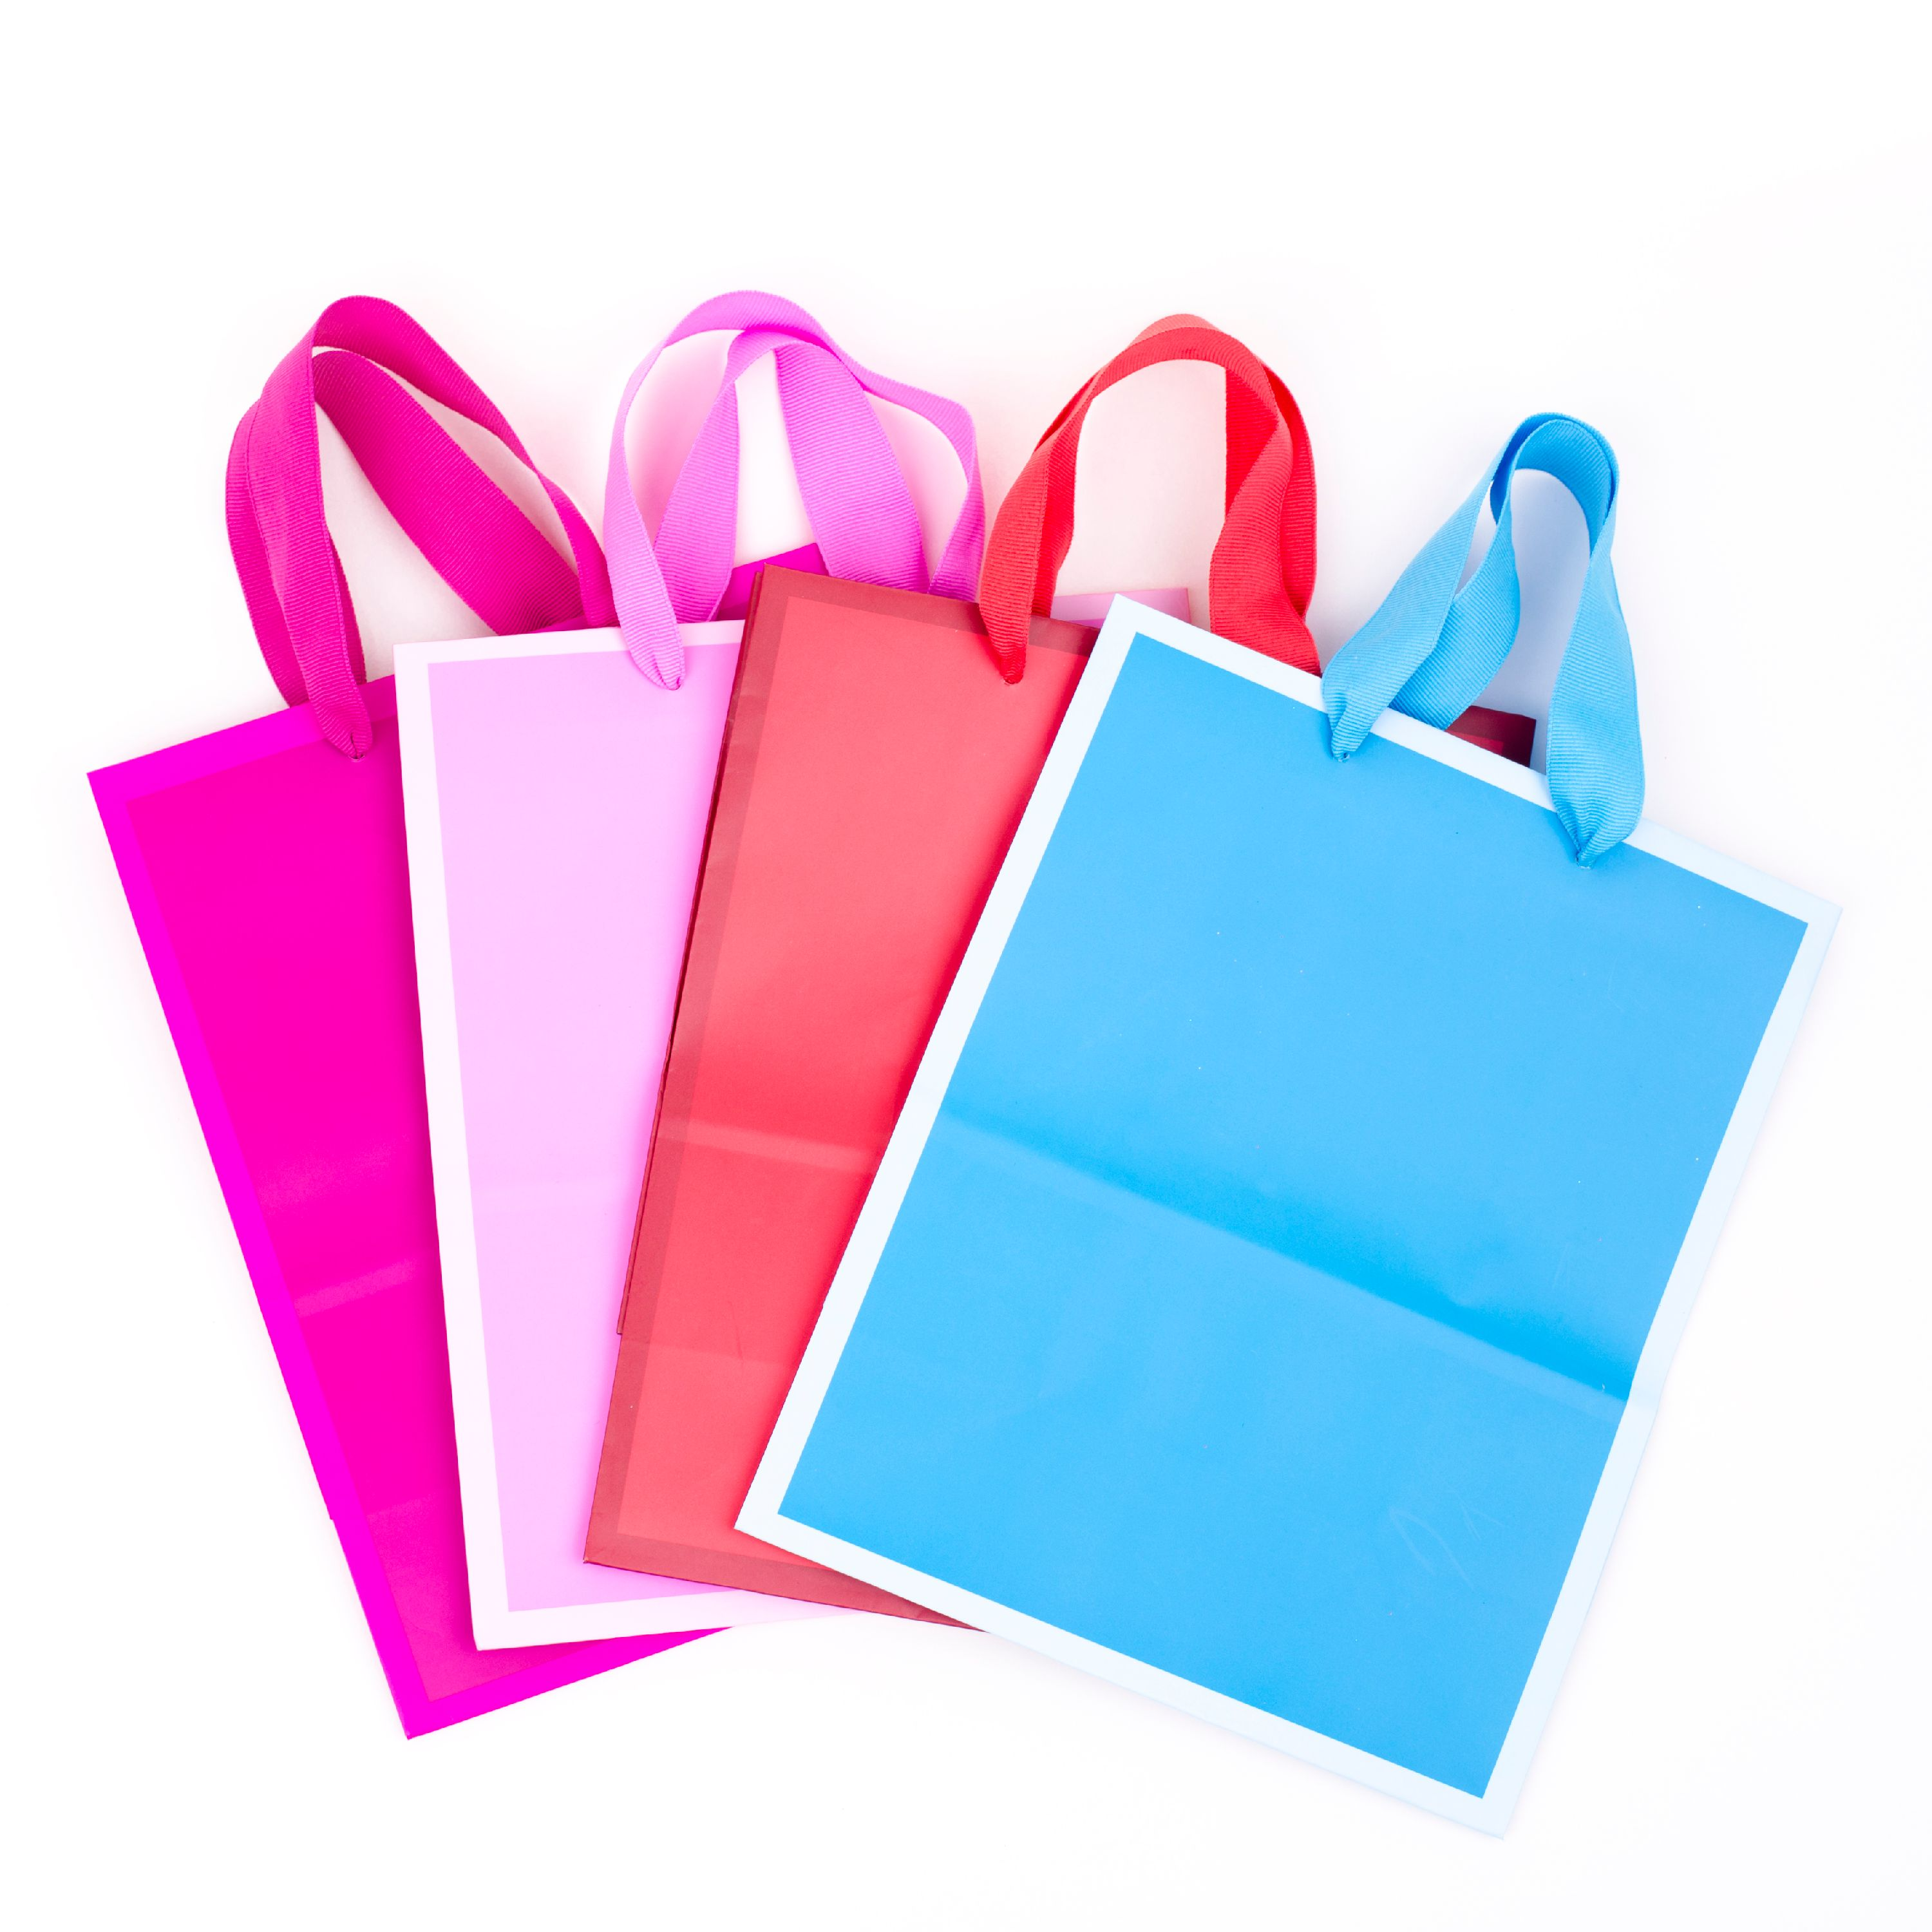 Hallmark, Solid Color, Medium Gift Bags, 4 Pack